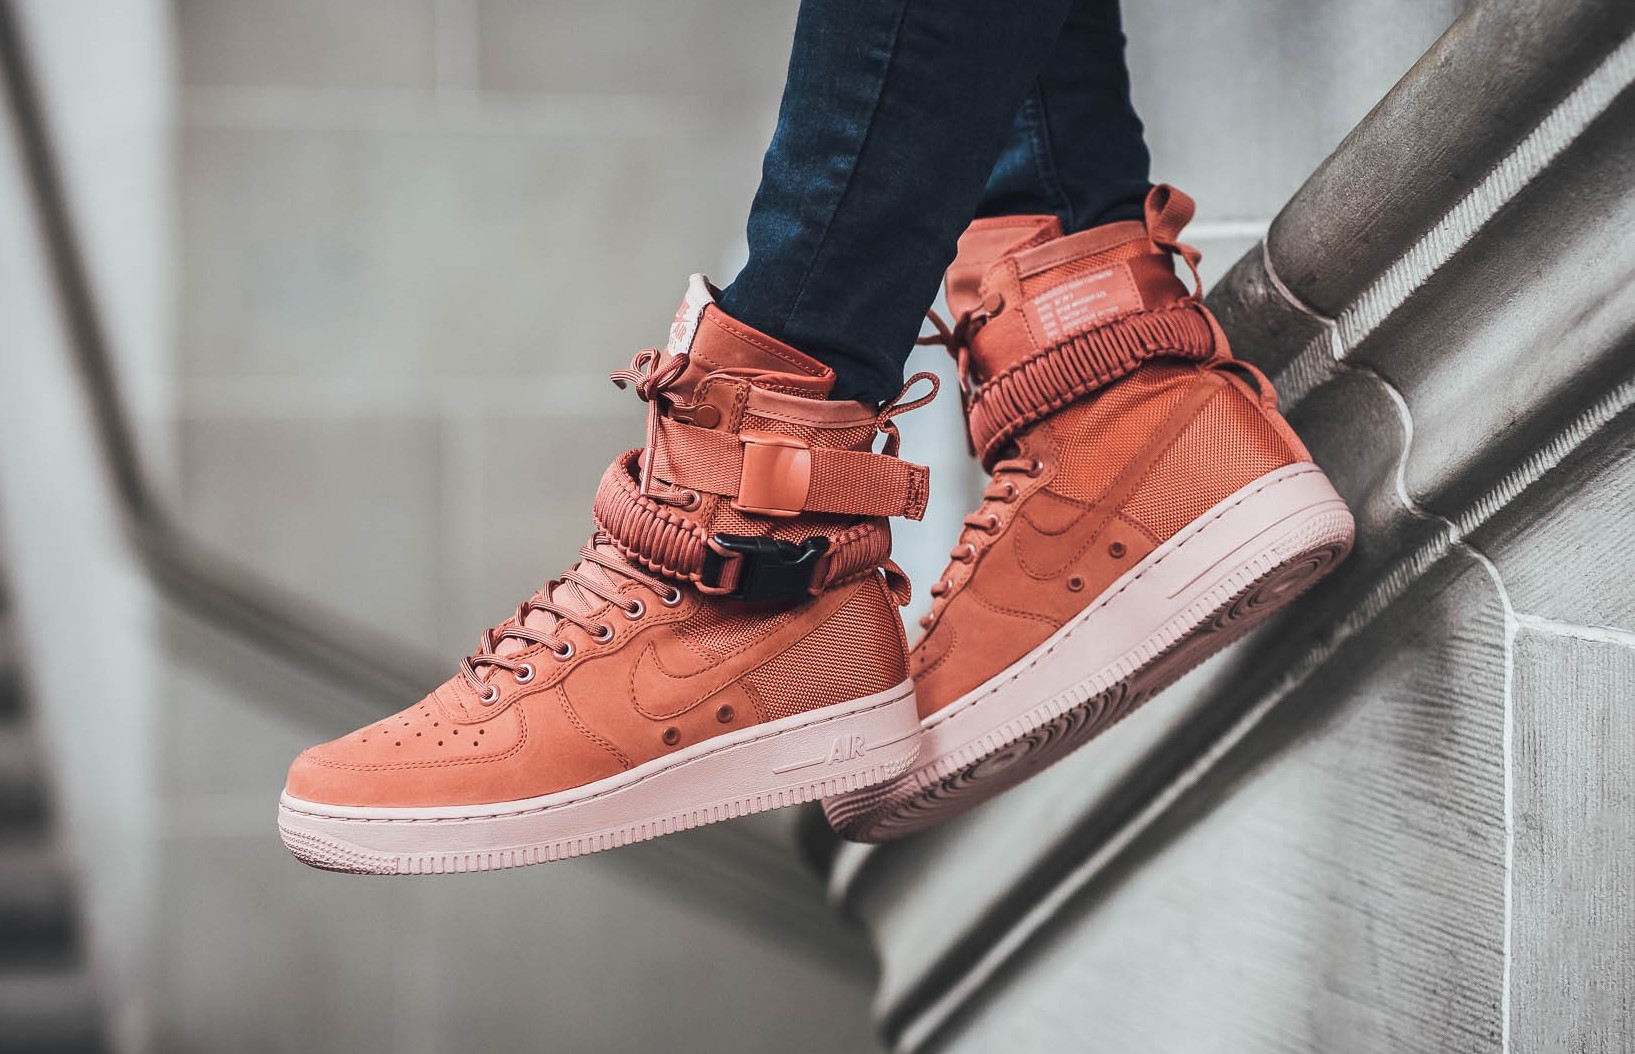 Flex Your Special Forces In The Newest Dusty Peach Colorway